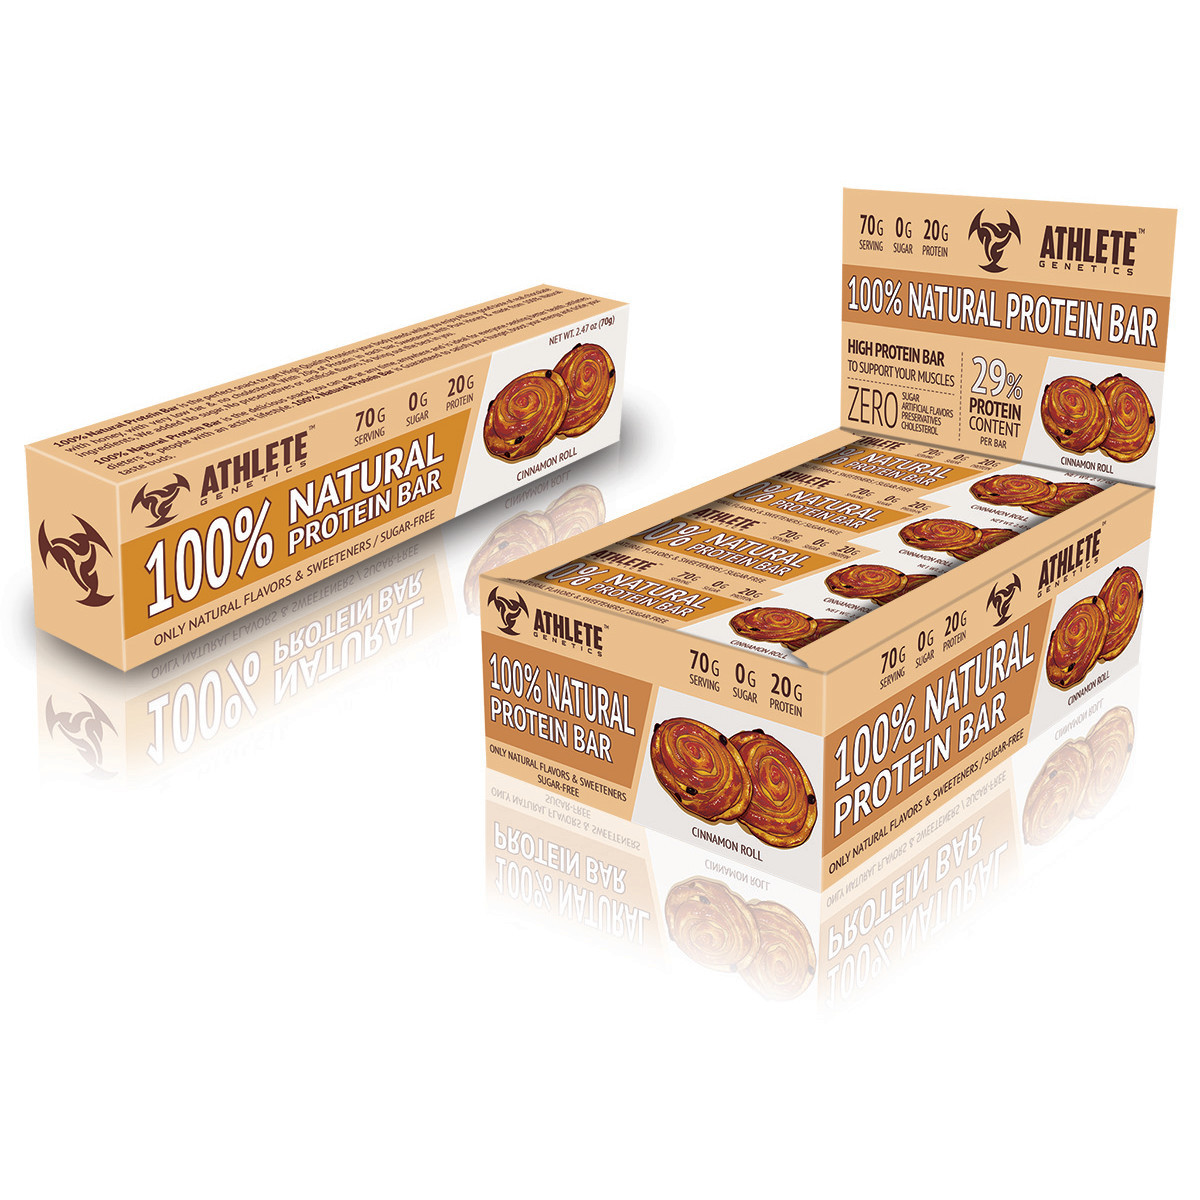 Батончик Athlete Genetics - 100% Natural Protein Bar (70 грамм)  cinnamon roll/булочка с корицей